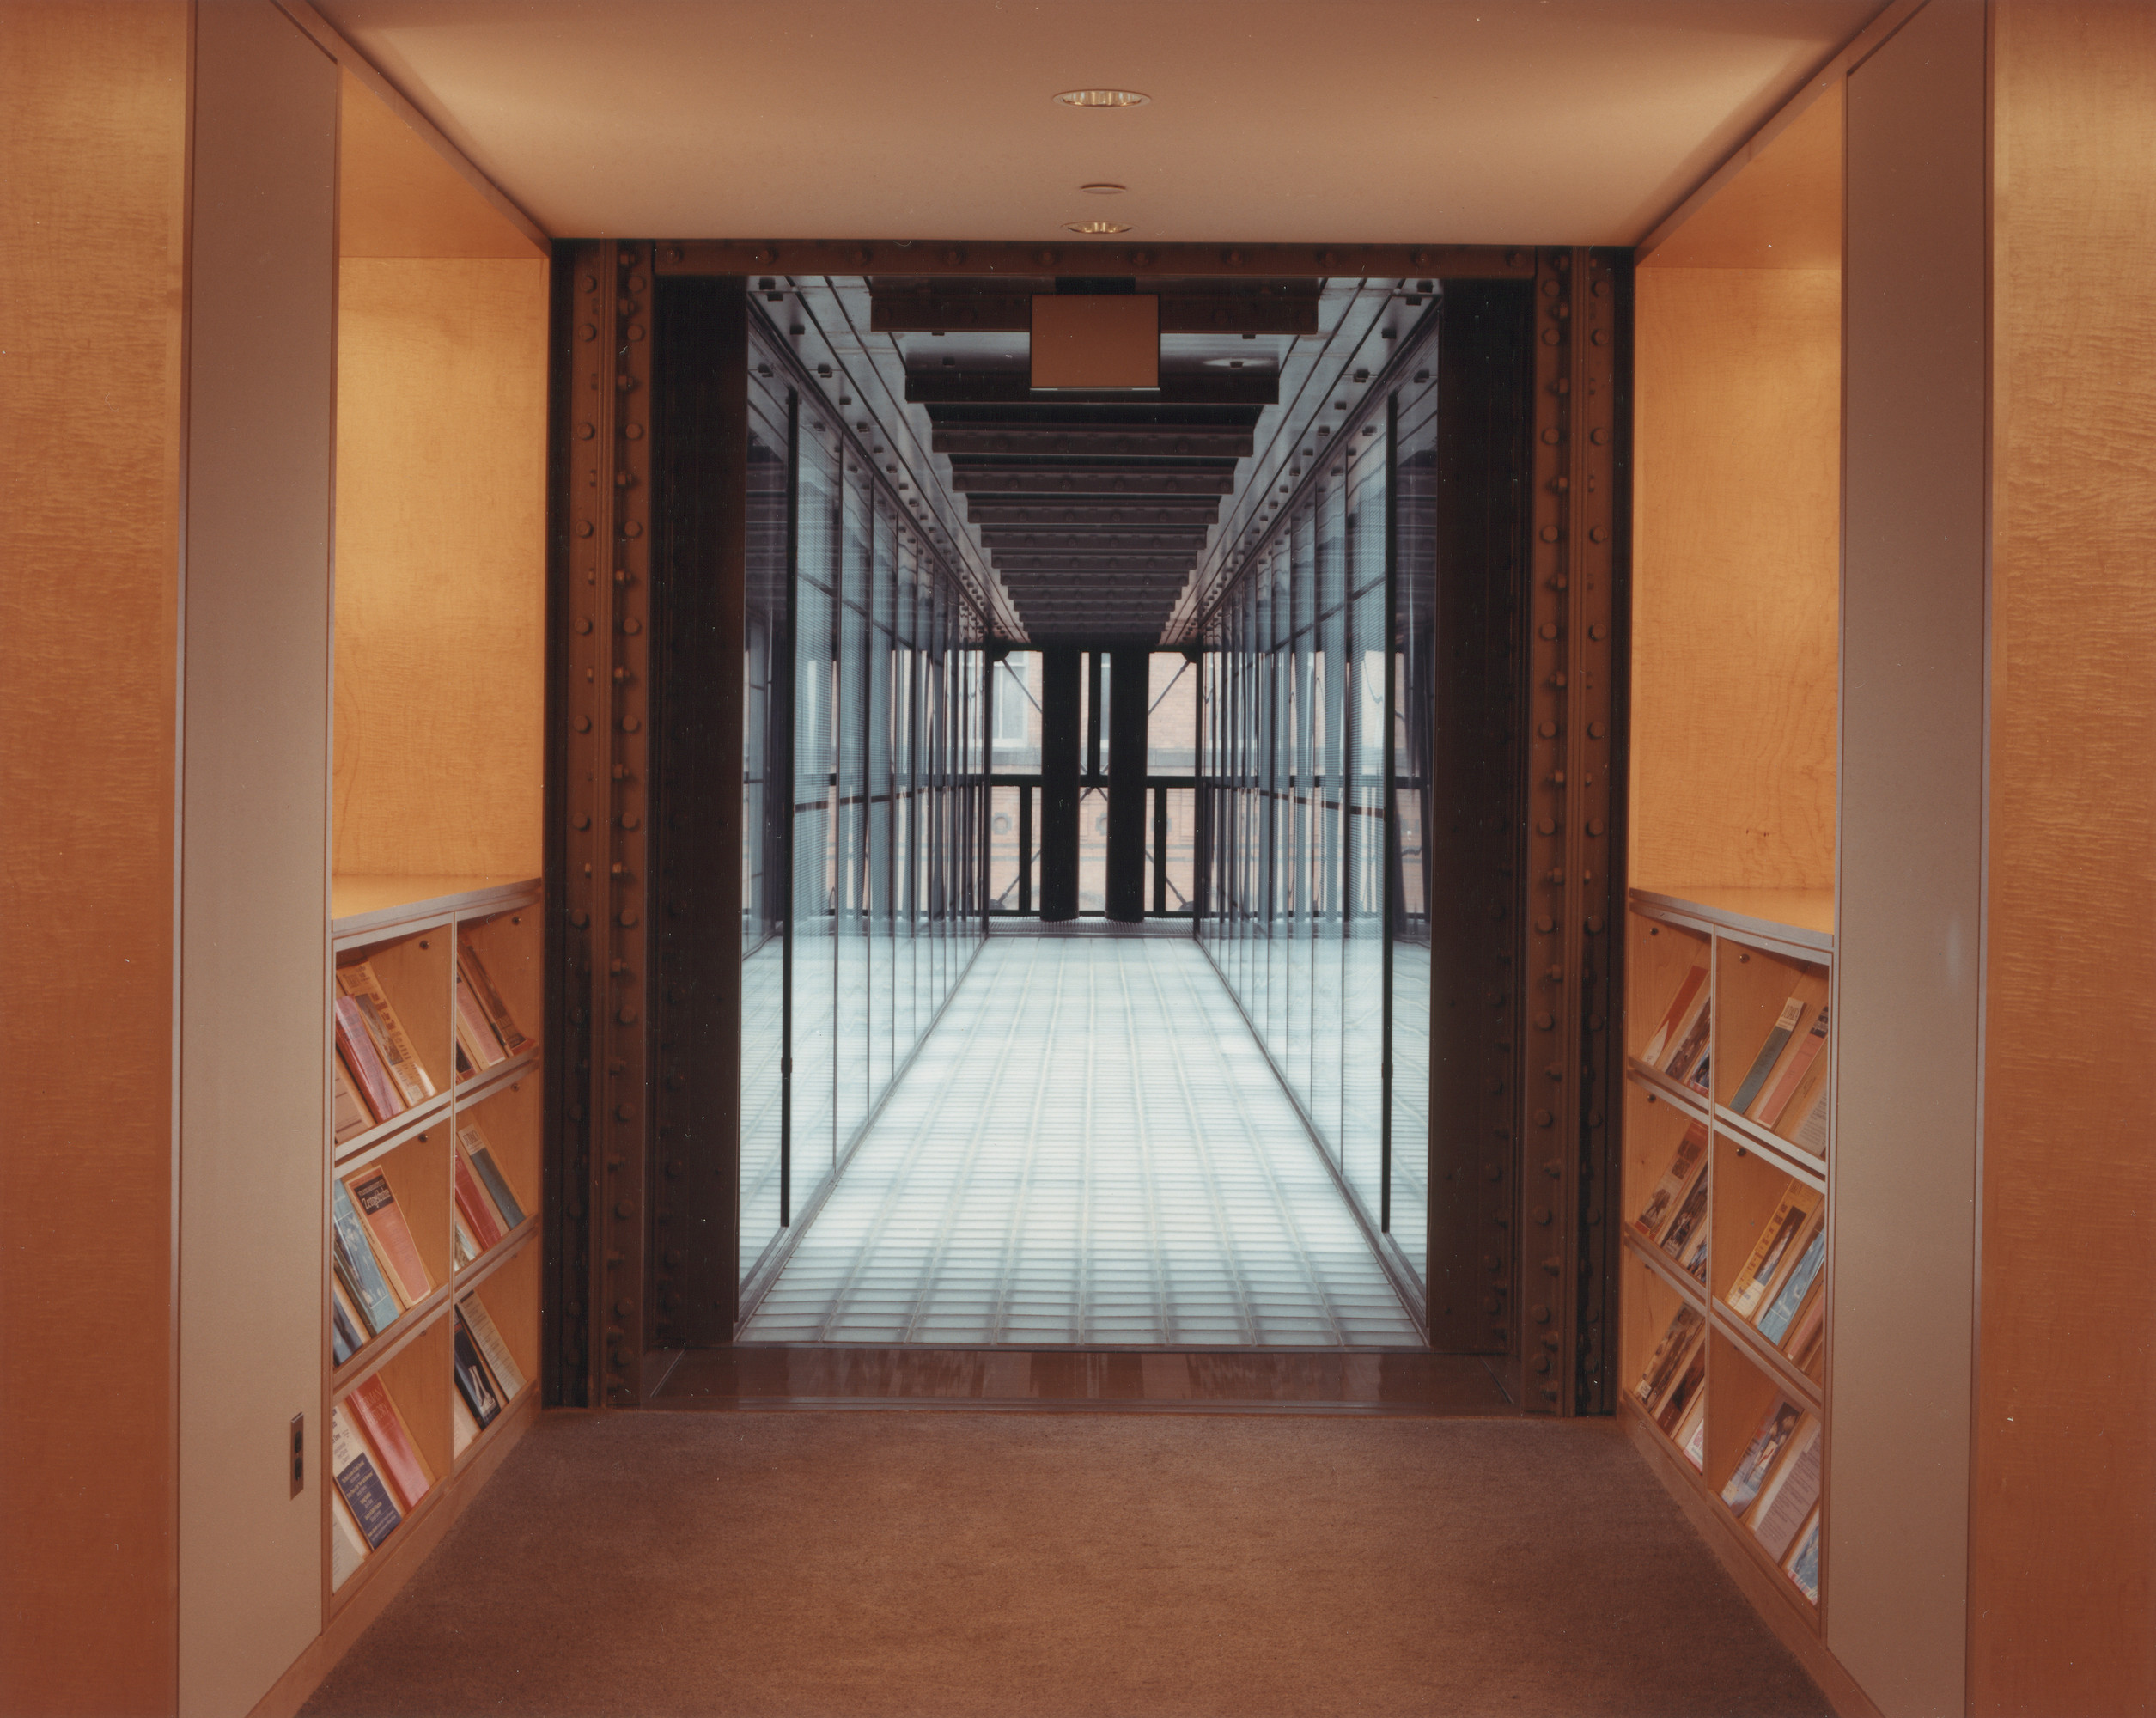 View of the bridge on the fifth floor of the U.S. Holocaust Memorial Museum leading from the Museum library to the Tower Rooms.